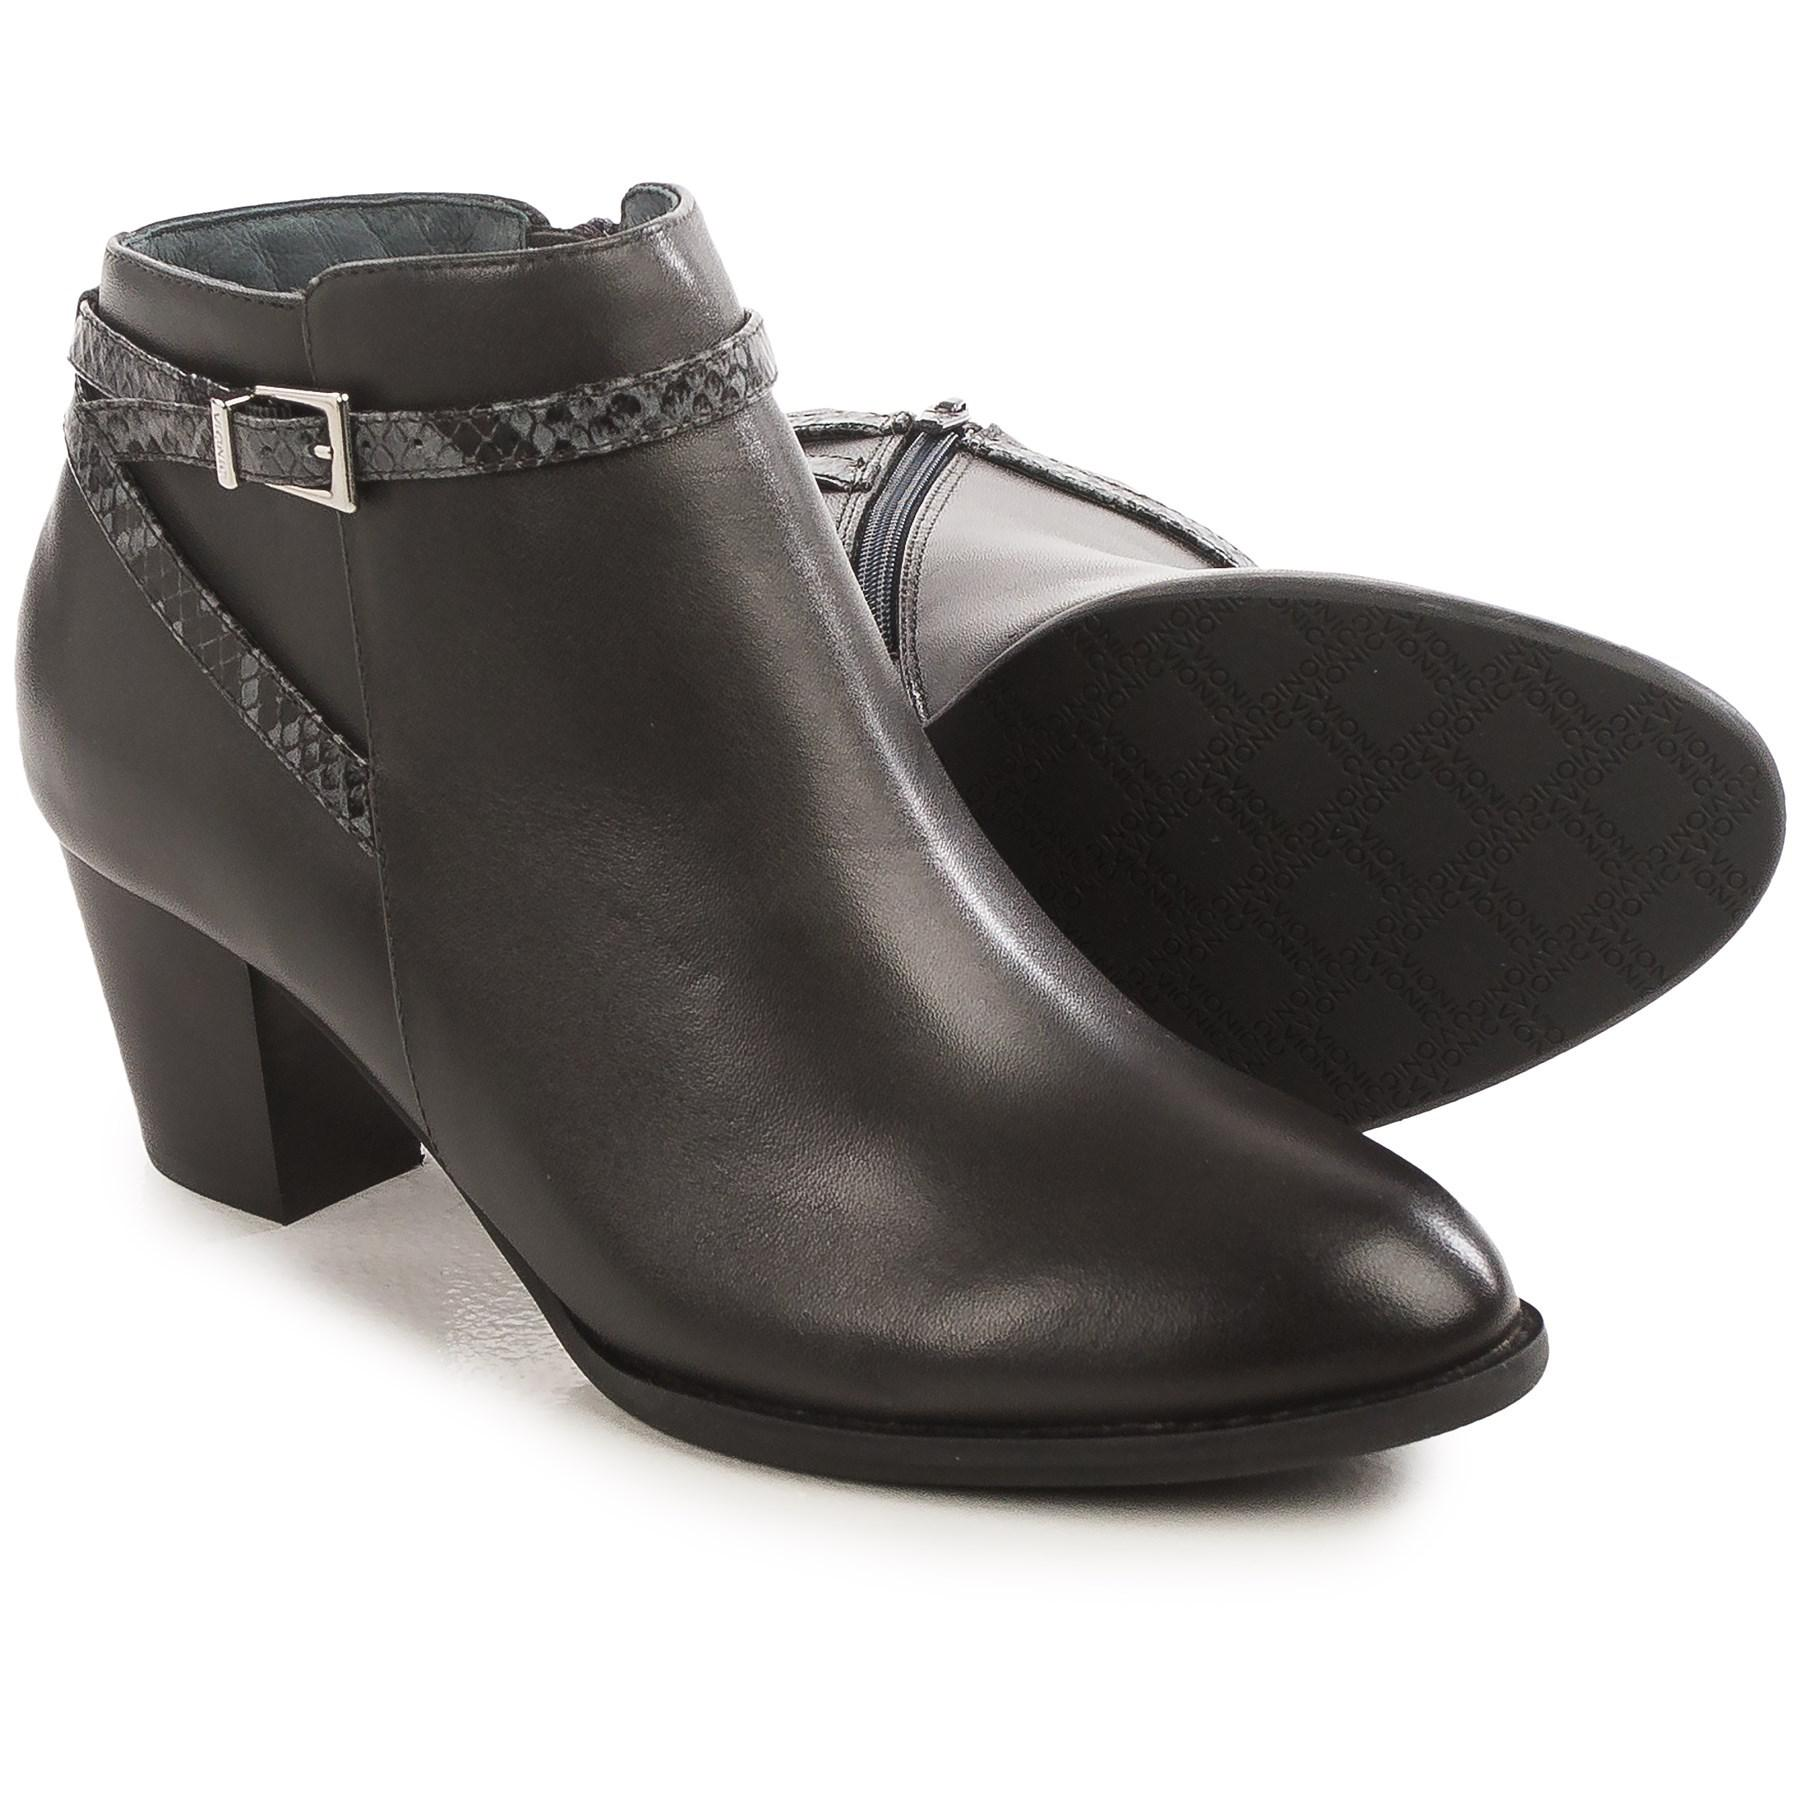 b9a189a3680 Vionic - Gray With Orthaheel Technology Upton Ankle Boots - Lyst